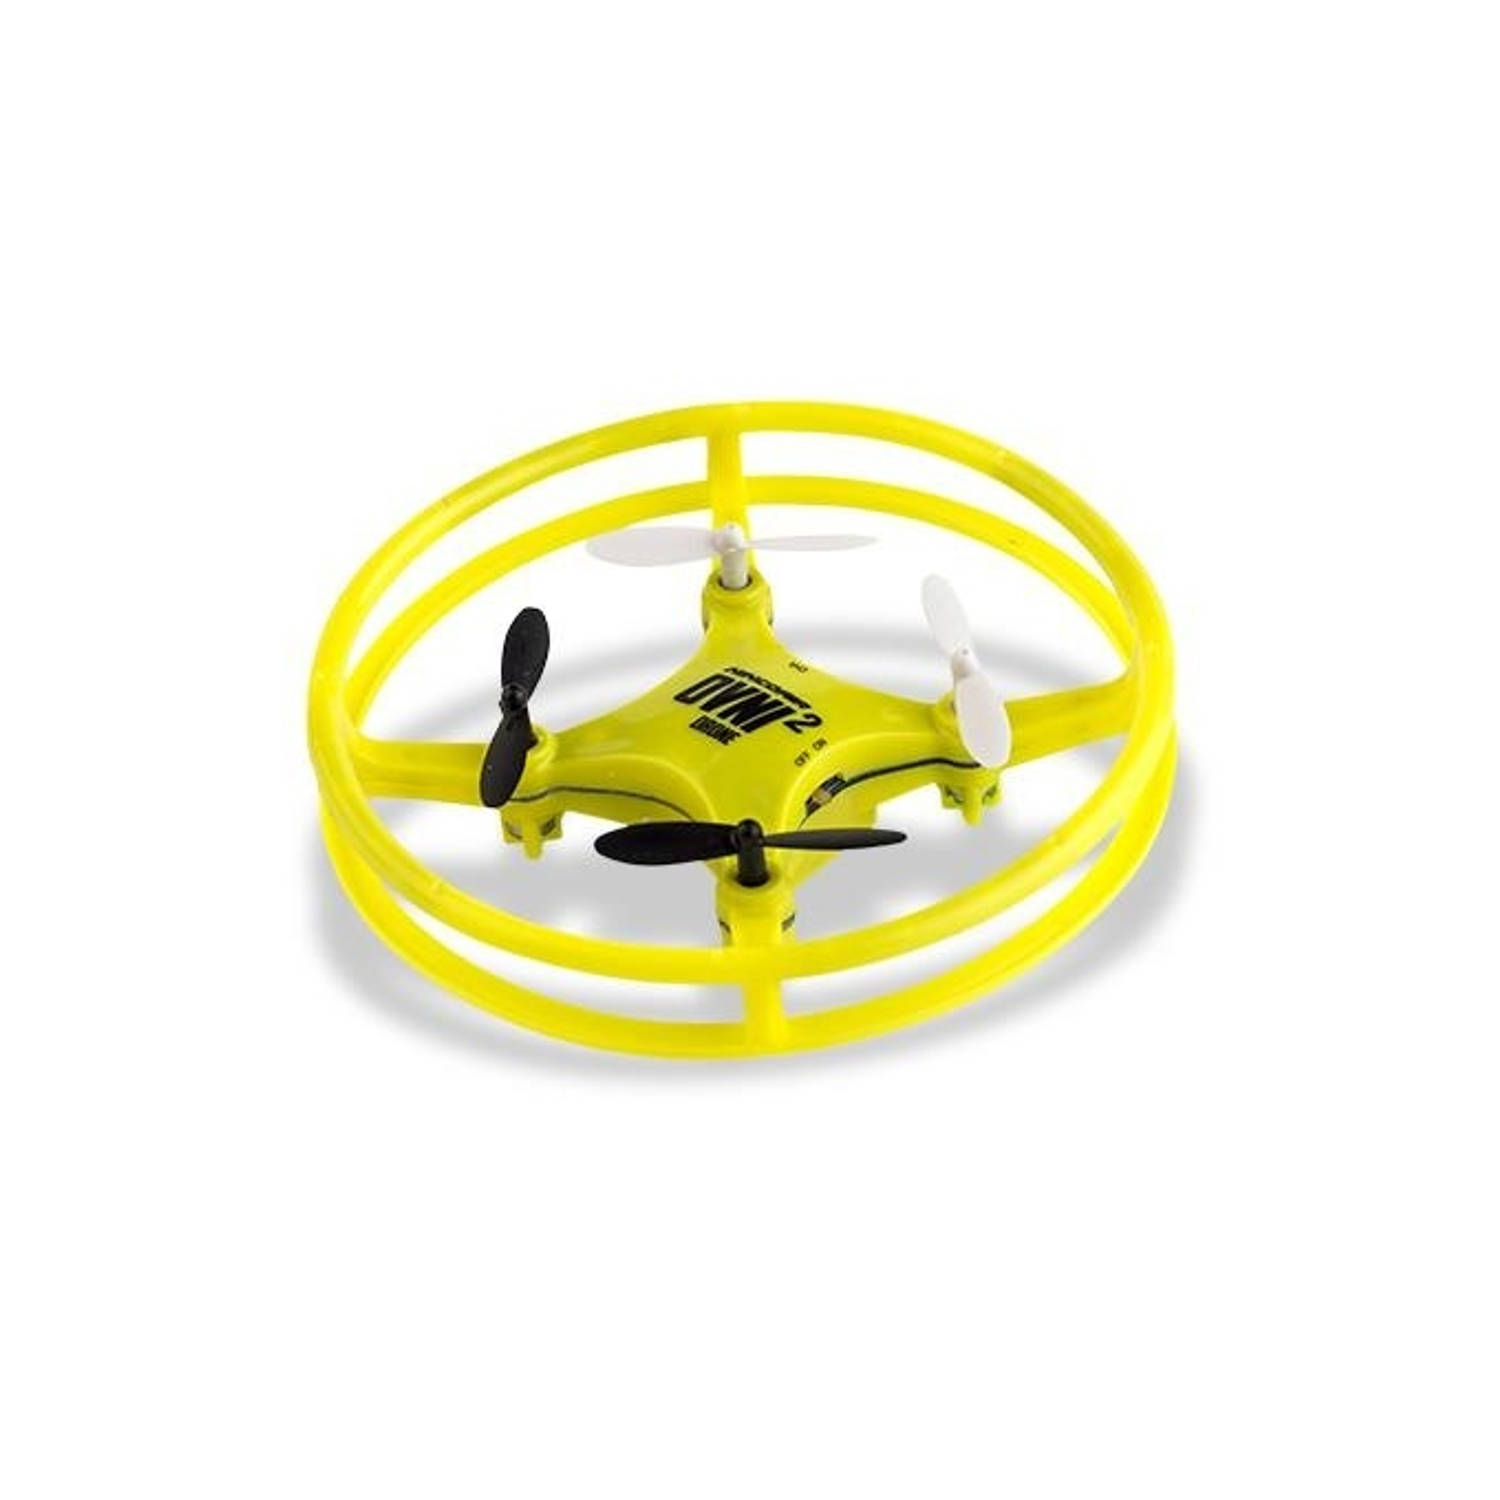 Ninco quadcopter Air Ovni 2 10 cm groen